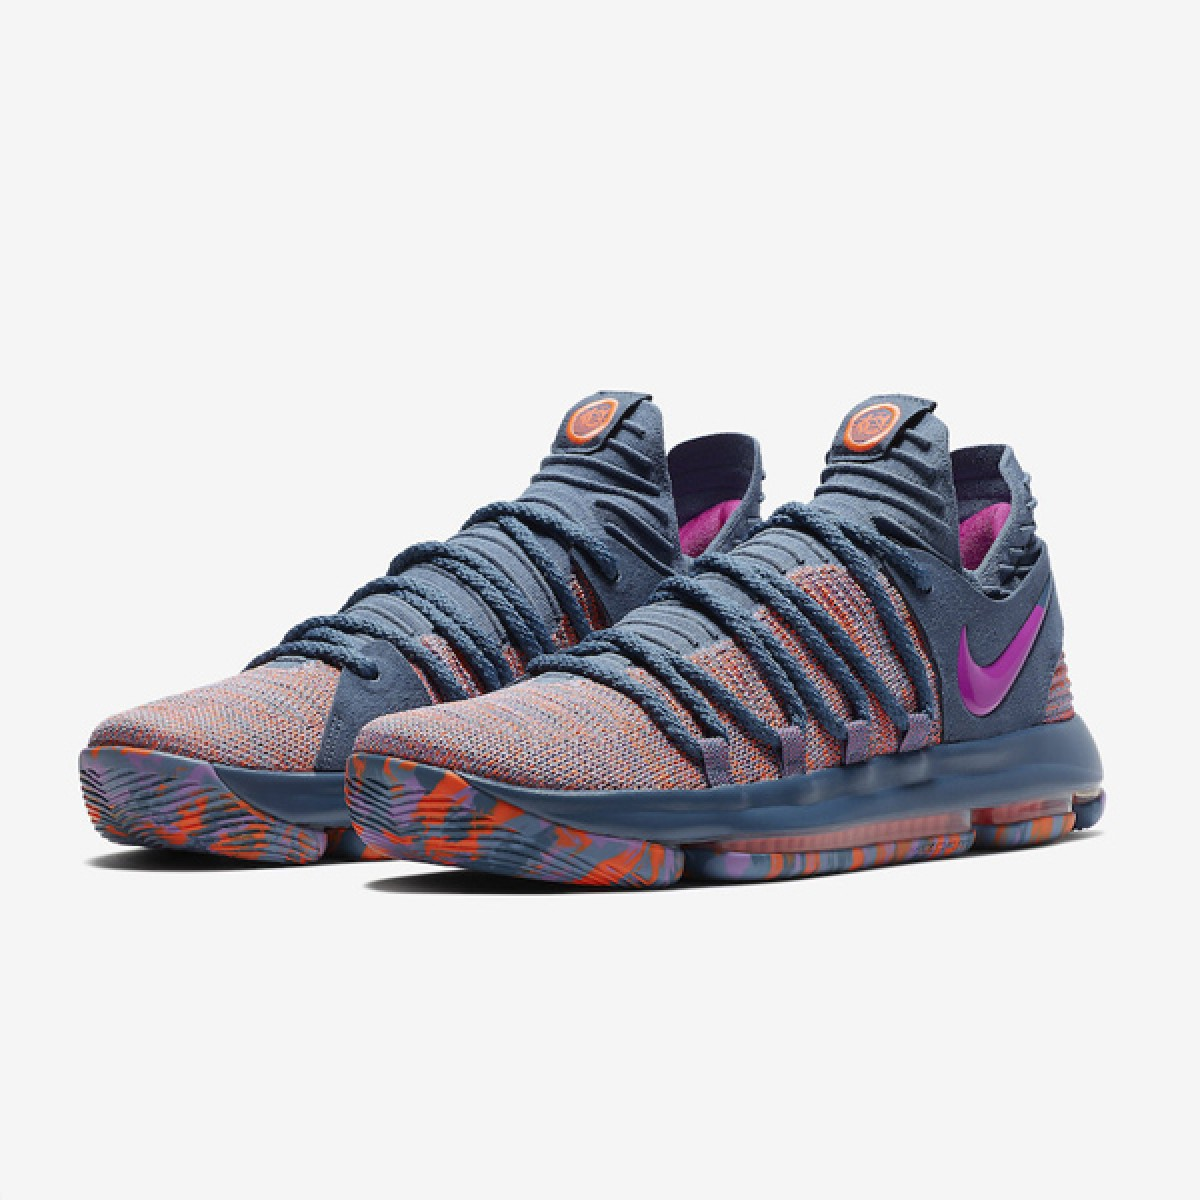 Nike Zoom KD 10 'All Star' 897817-400